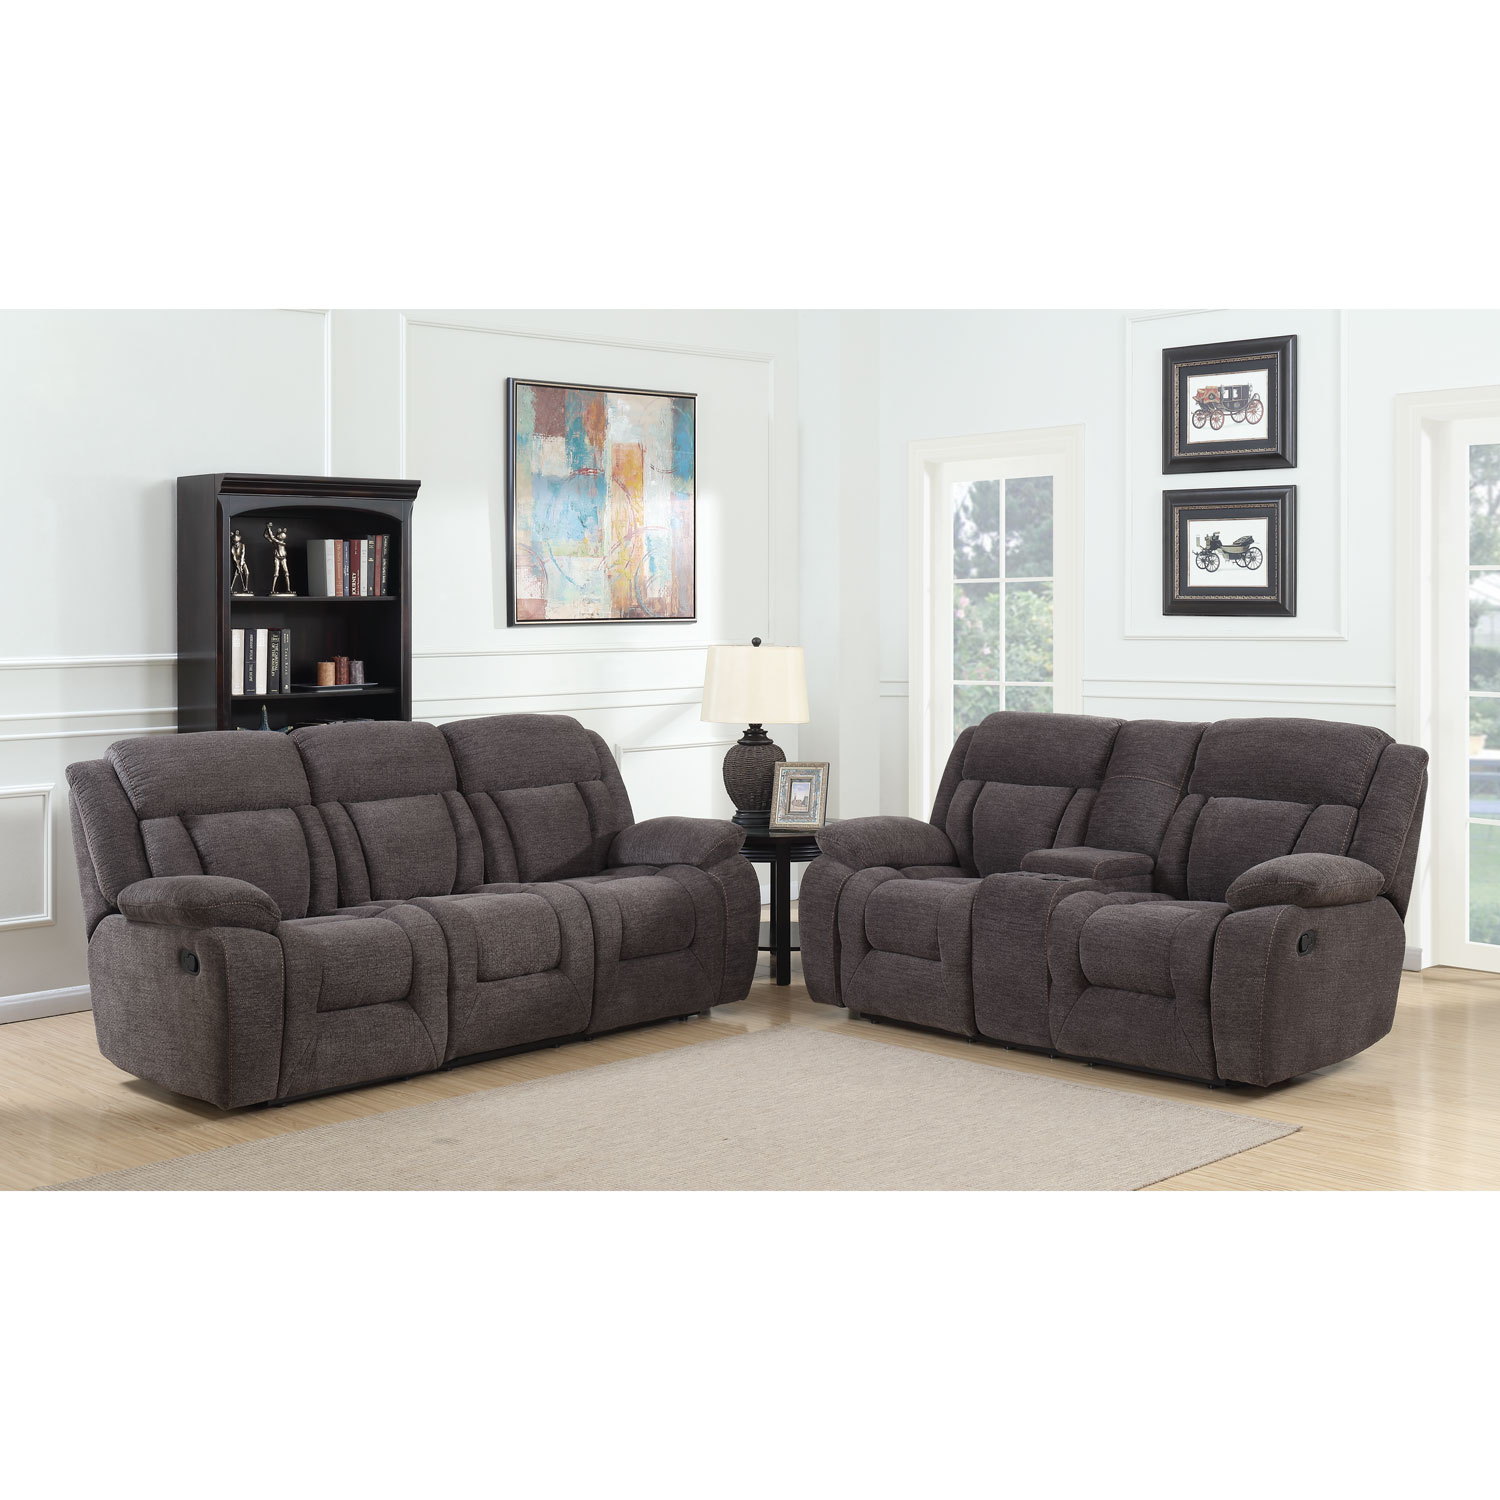 Geneva Contemporary Corduroy Recliner Sofa - Charcoal  Sofas - Best Buy Canada  sc 1 st  Best Buy Canada & Geneva Contemporary Corduroy Recliner Sofa - Charcoal : Sofas ... islam-shia.org